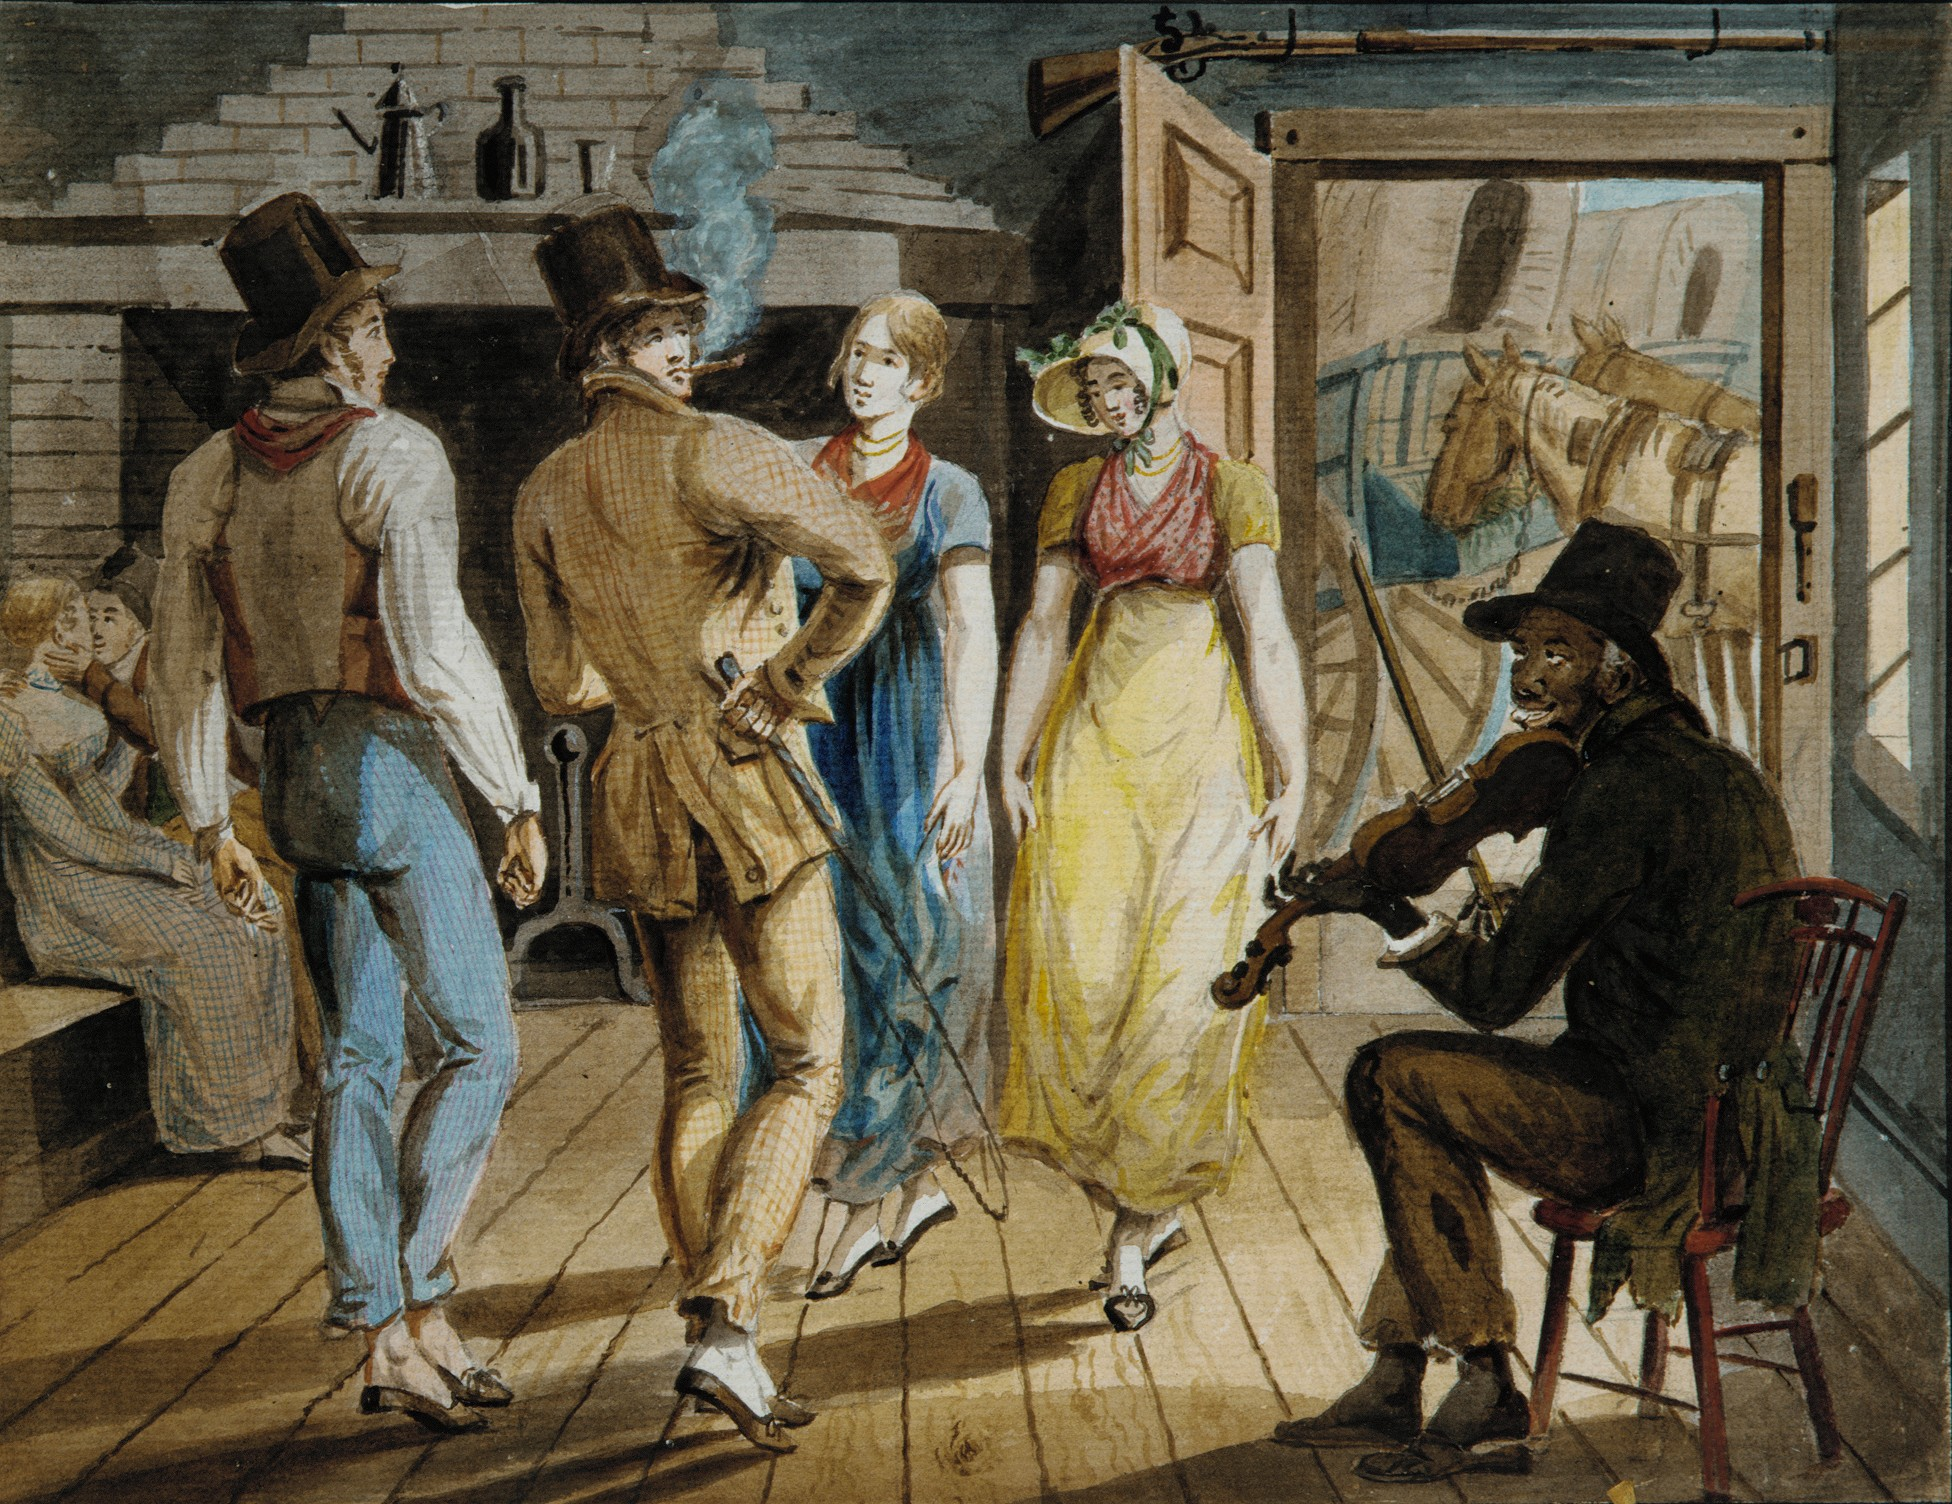 Watercolor artists directory wiki - Merrymaking At A Wayside Inn